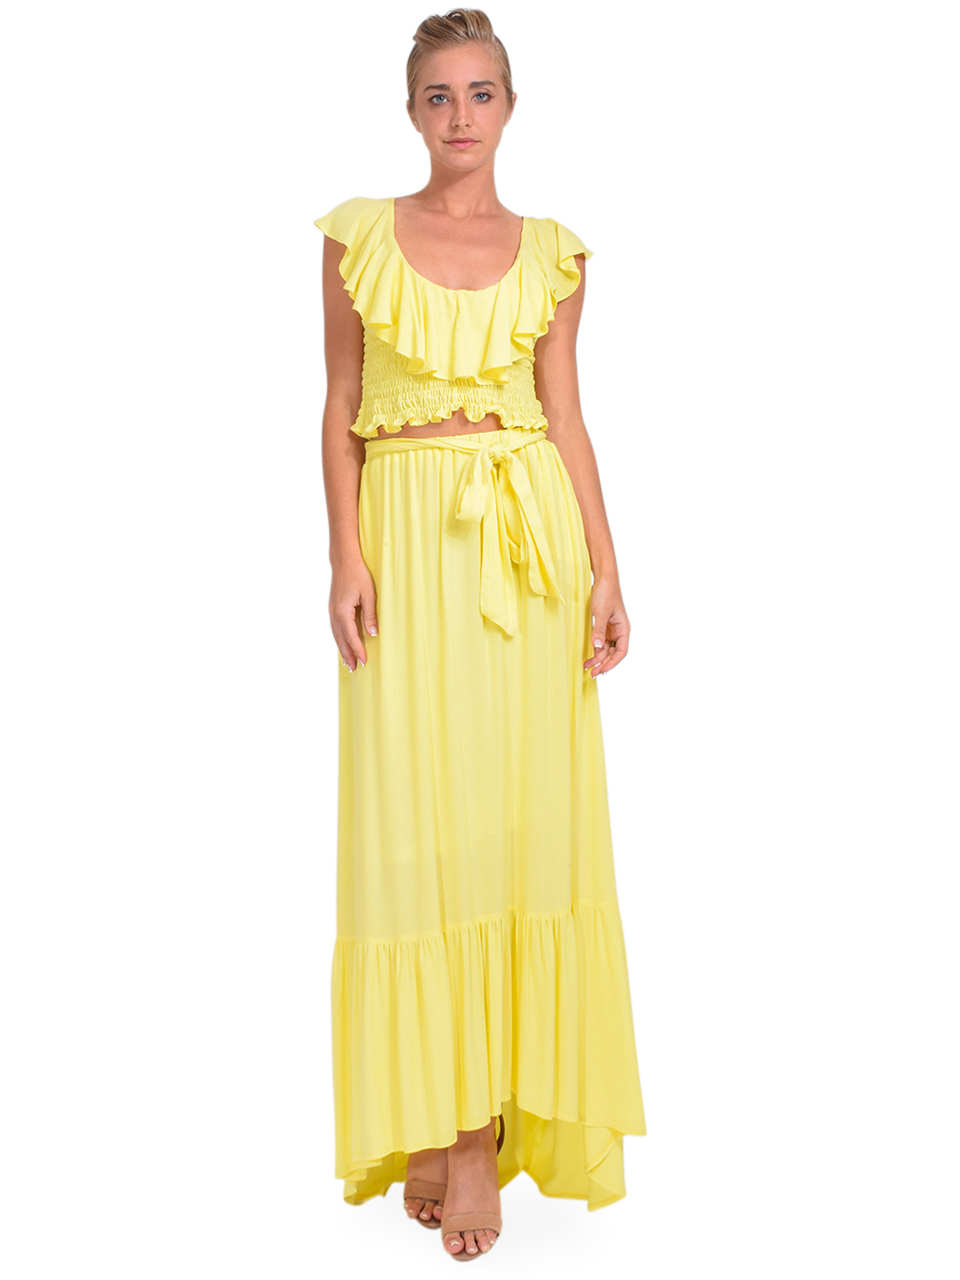 KASIA Sifnos Crop Top in Yellow Full Outfit 1